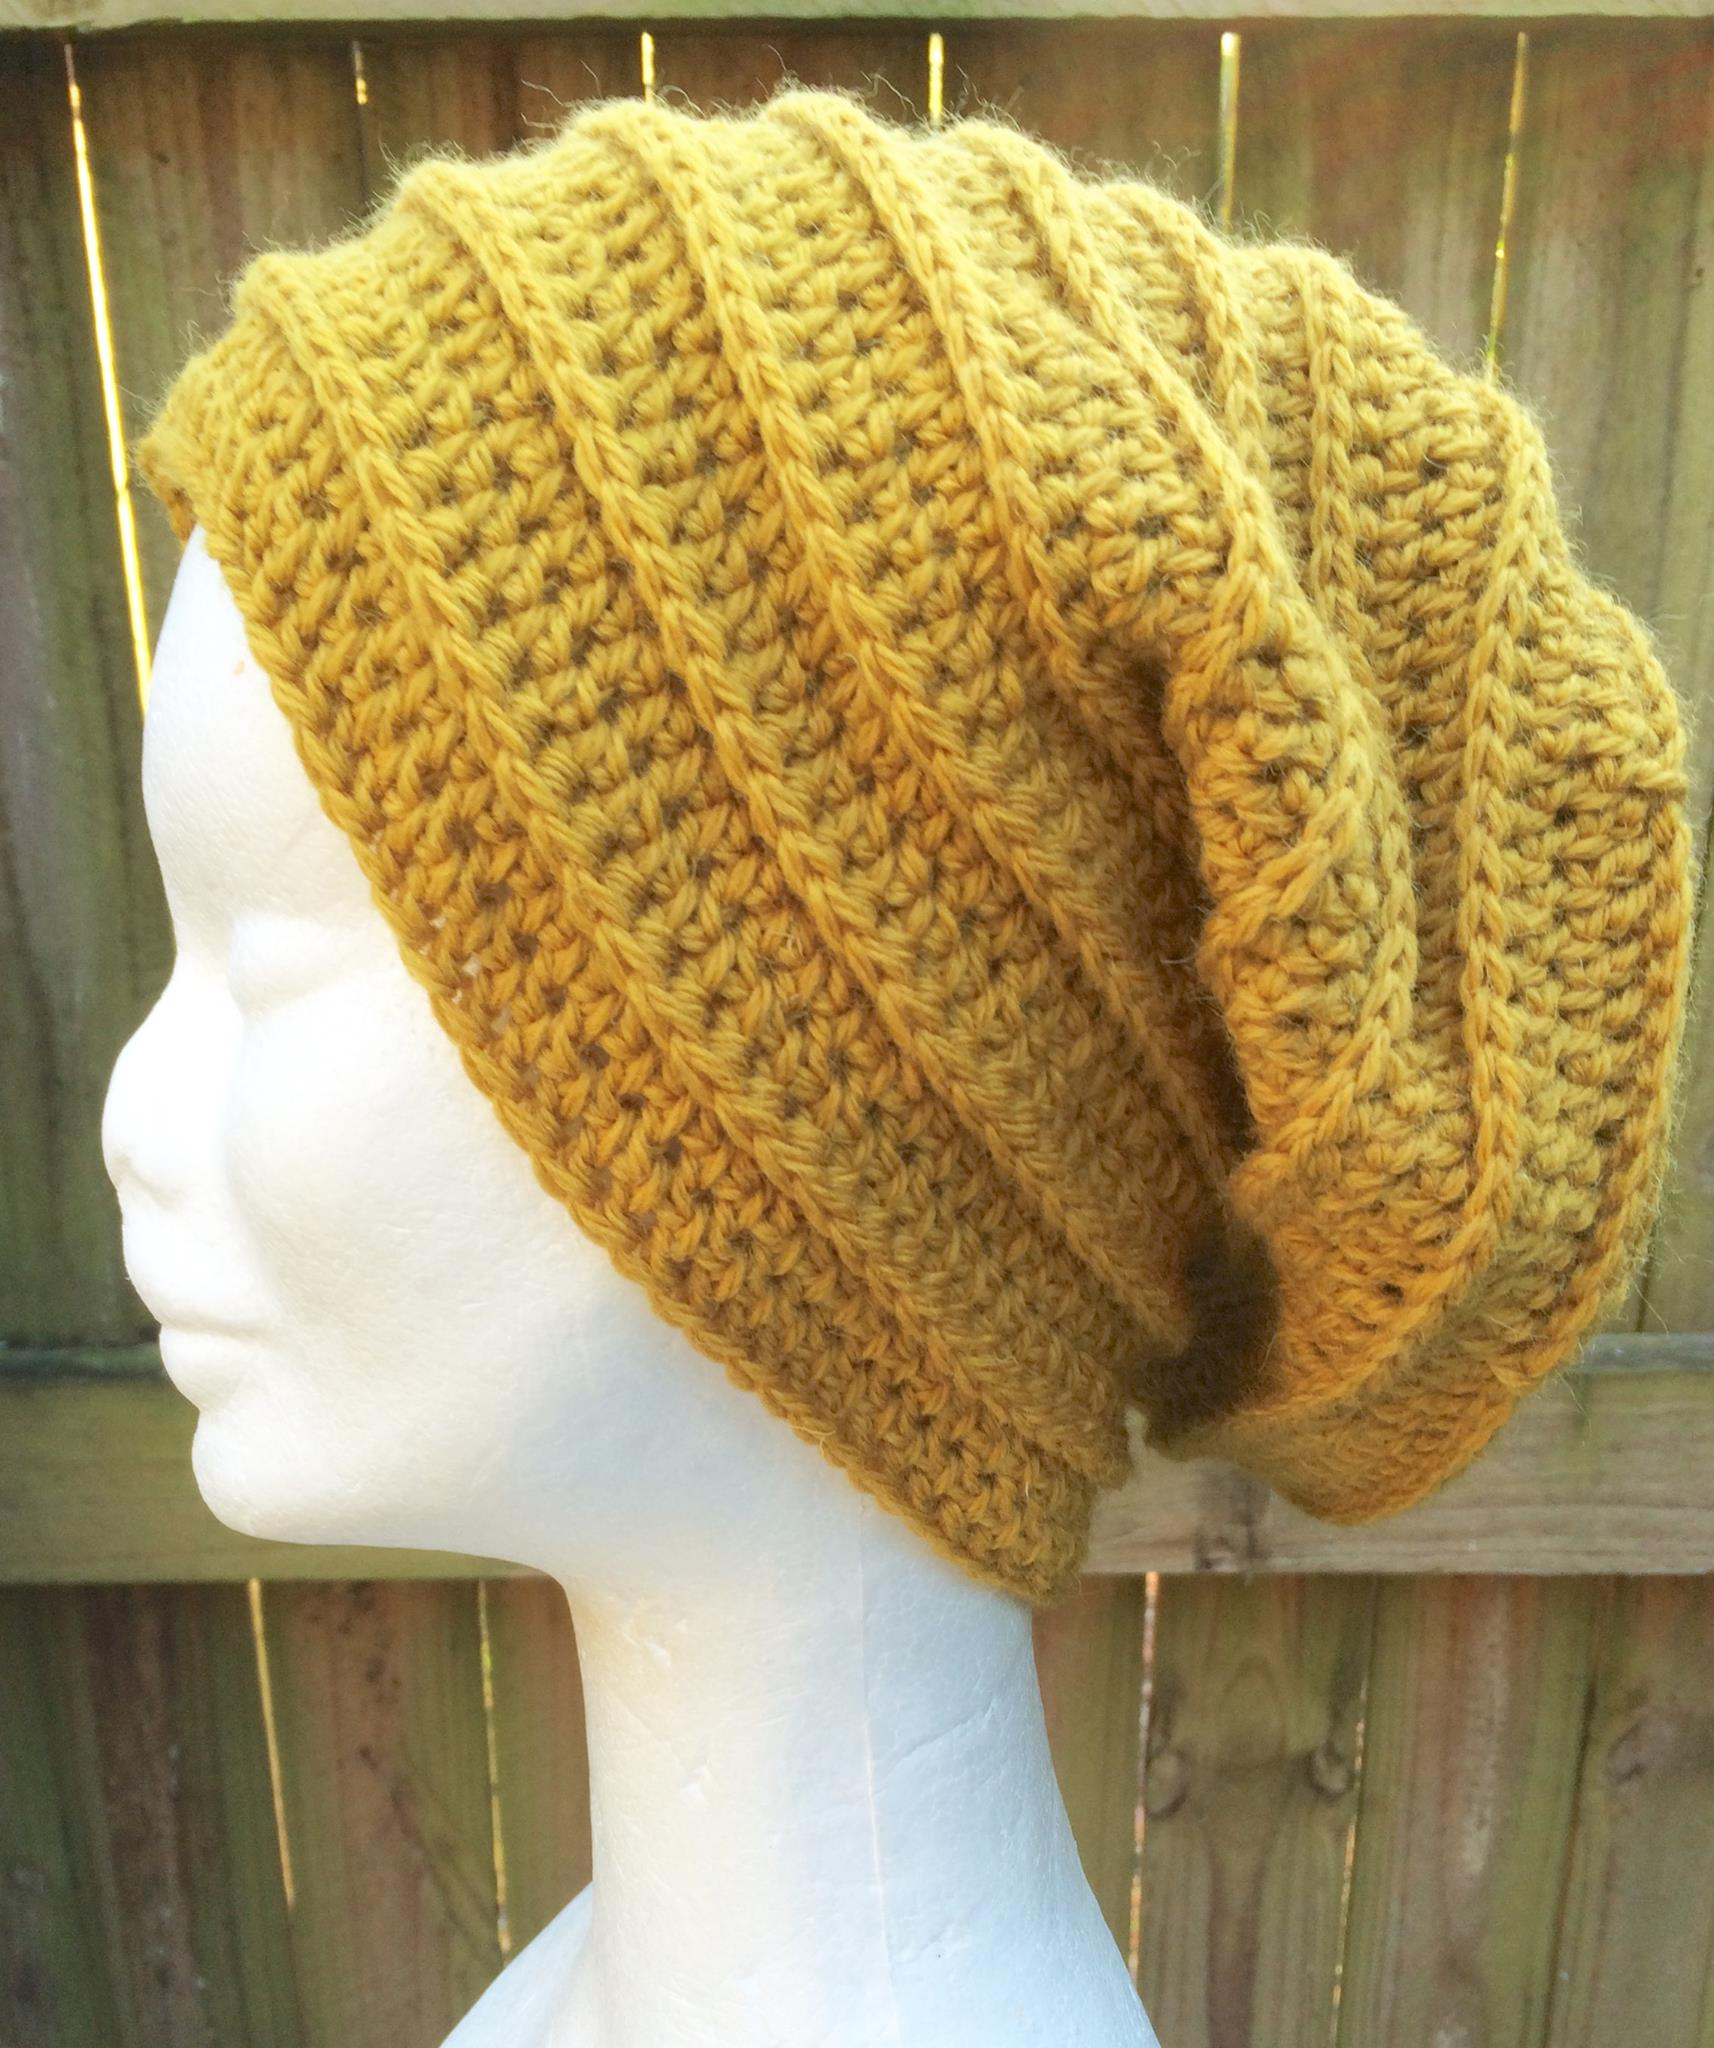 Crocheted Slouchy beanie in mustard yellow with a textured ribbed ... 3bb846b95257